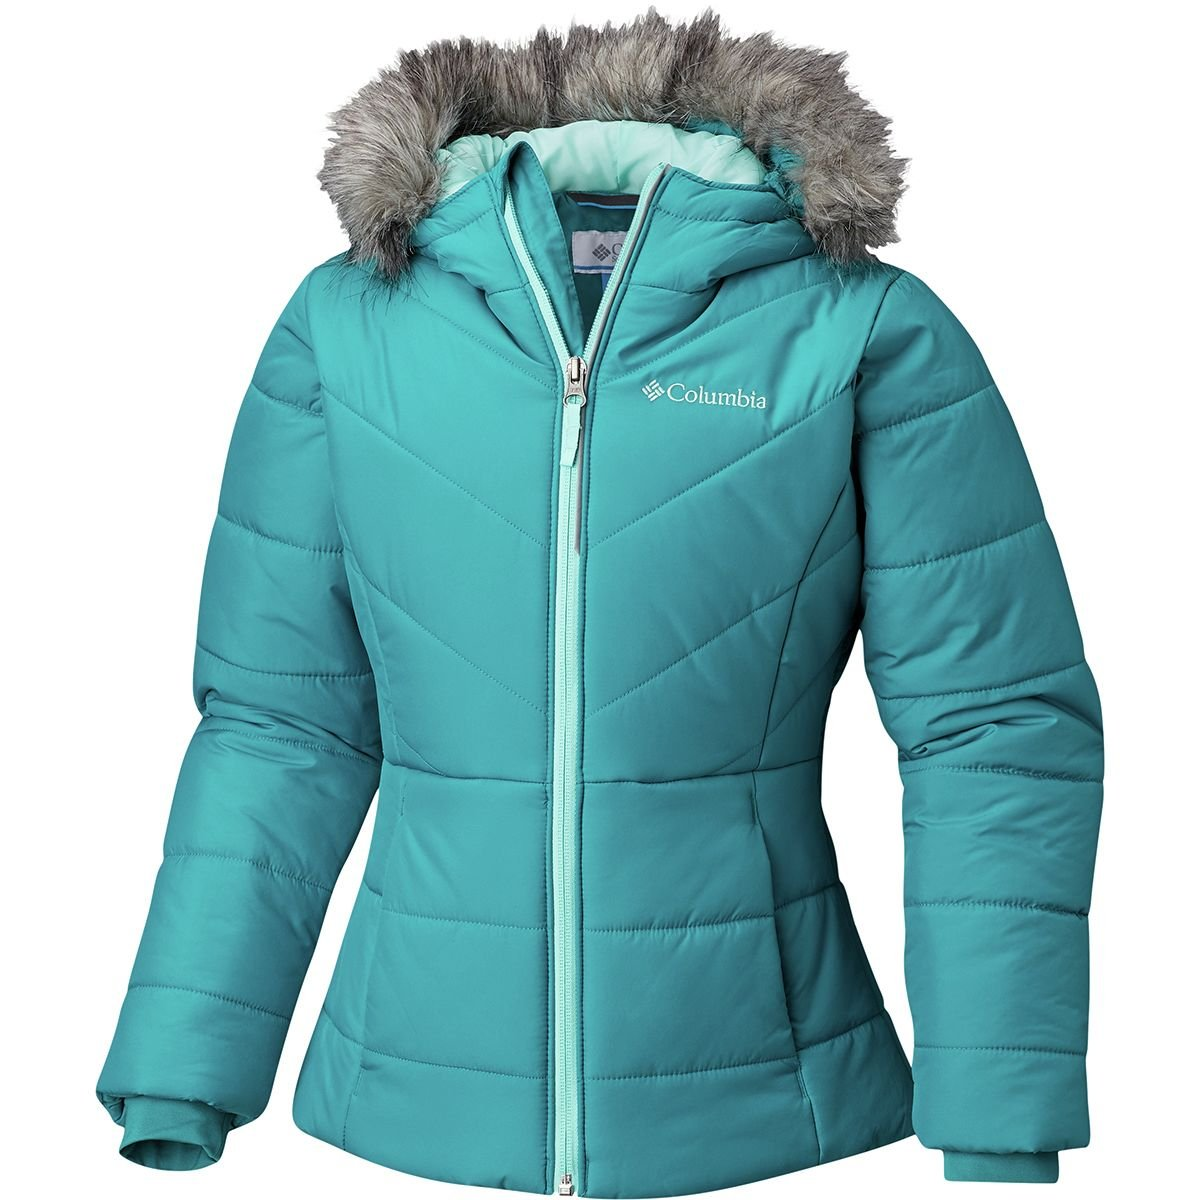 Columbia Katelyn Crest Insulated Jacket - Girls' Emerald, XL by Columbia